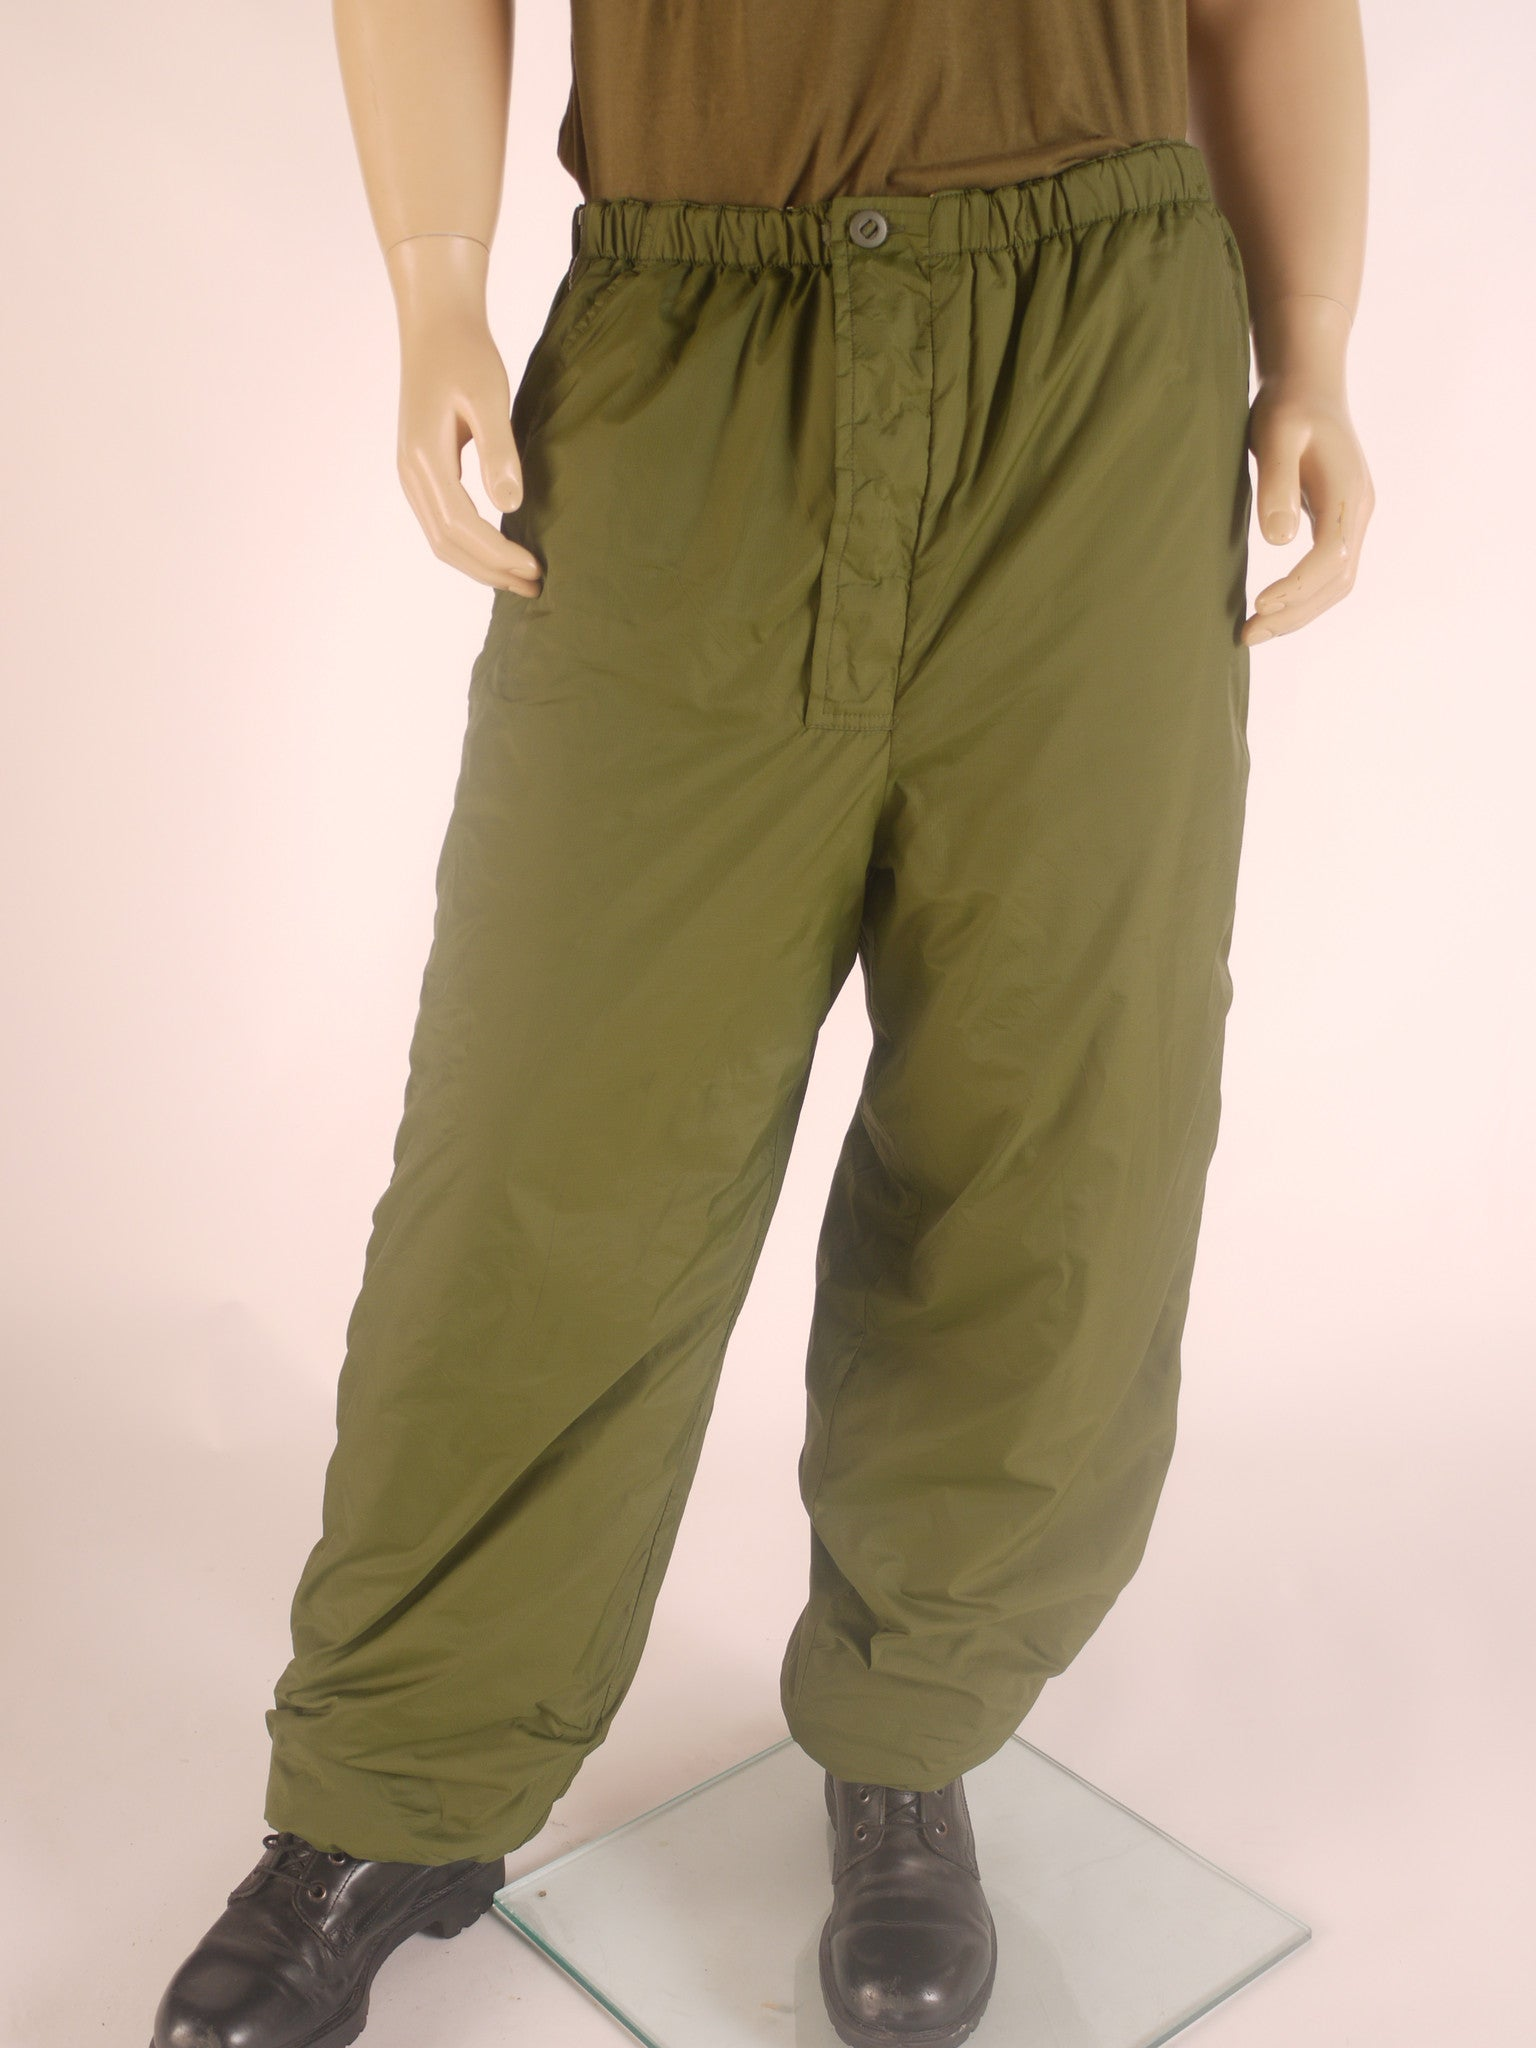 Softee trousers genuine british issue army surplus